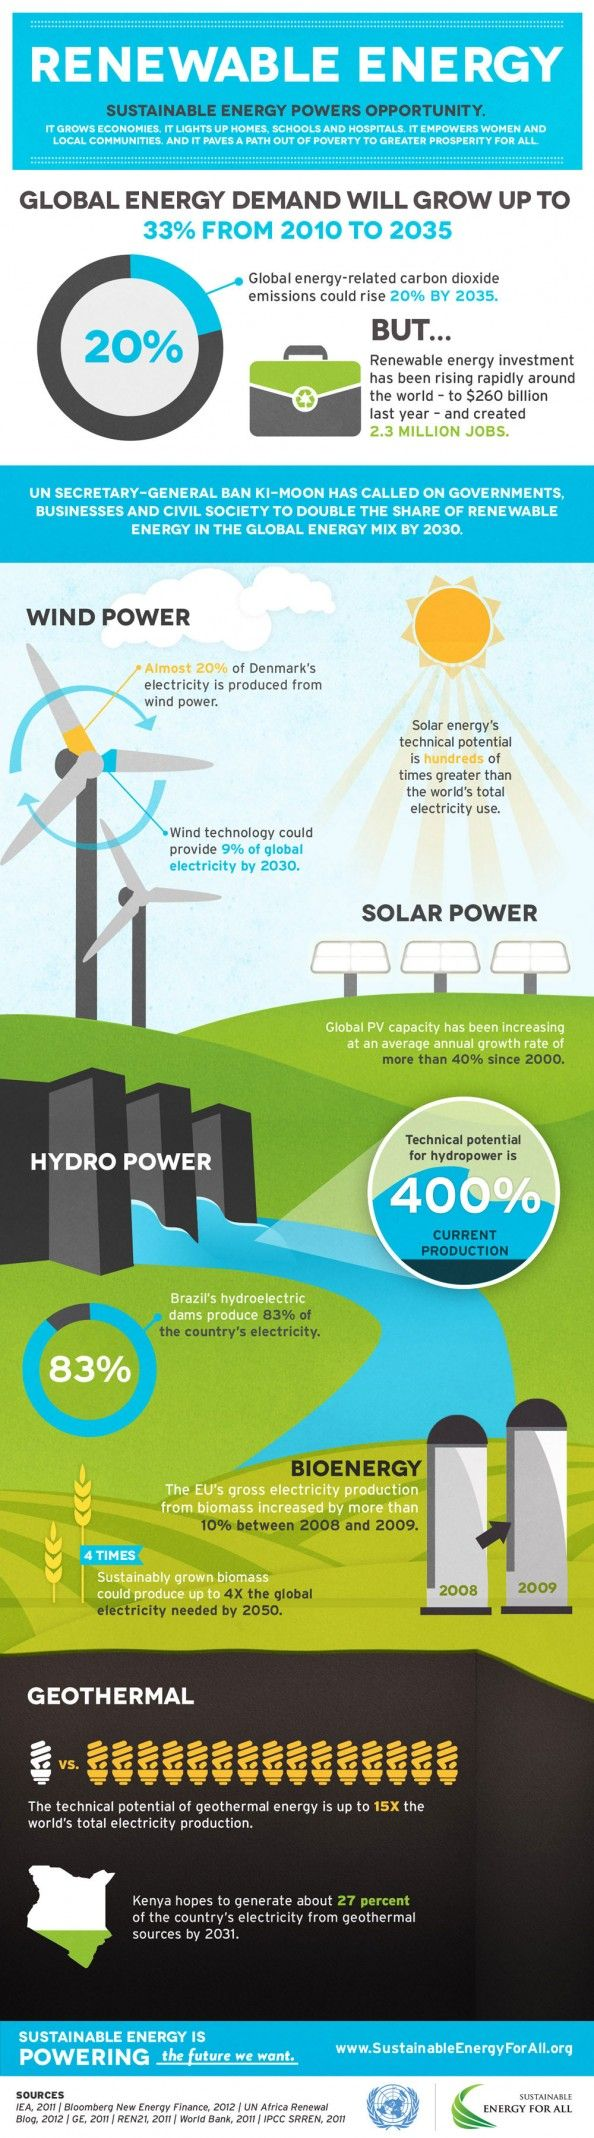 best infograhic in energy business images sustainable energy for all renewable energy infographic